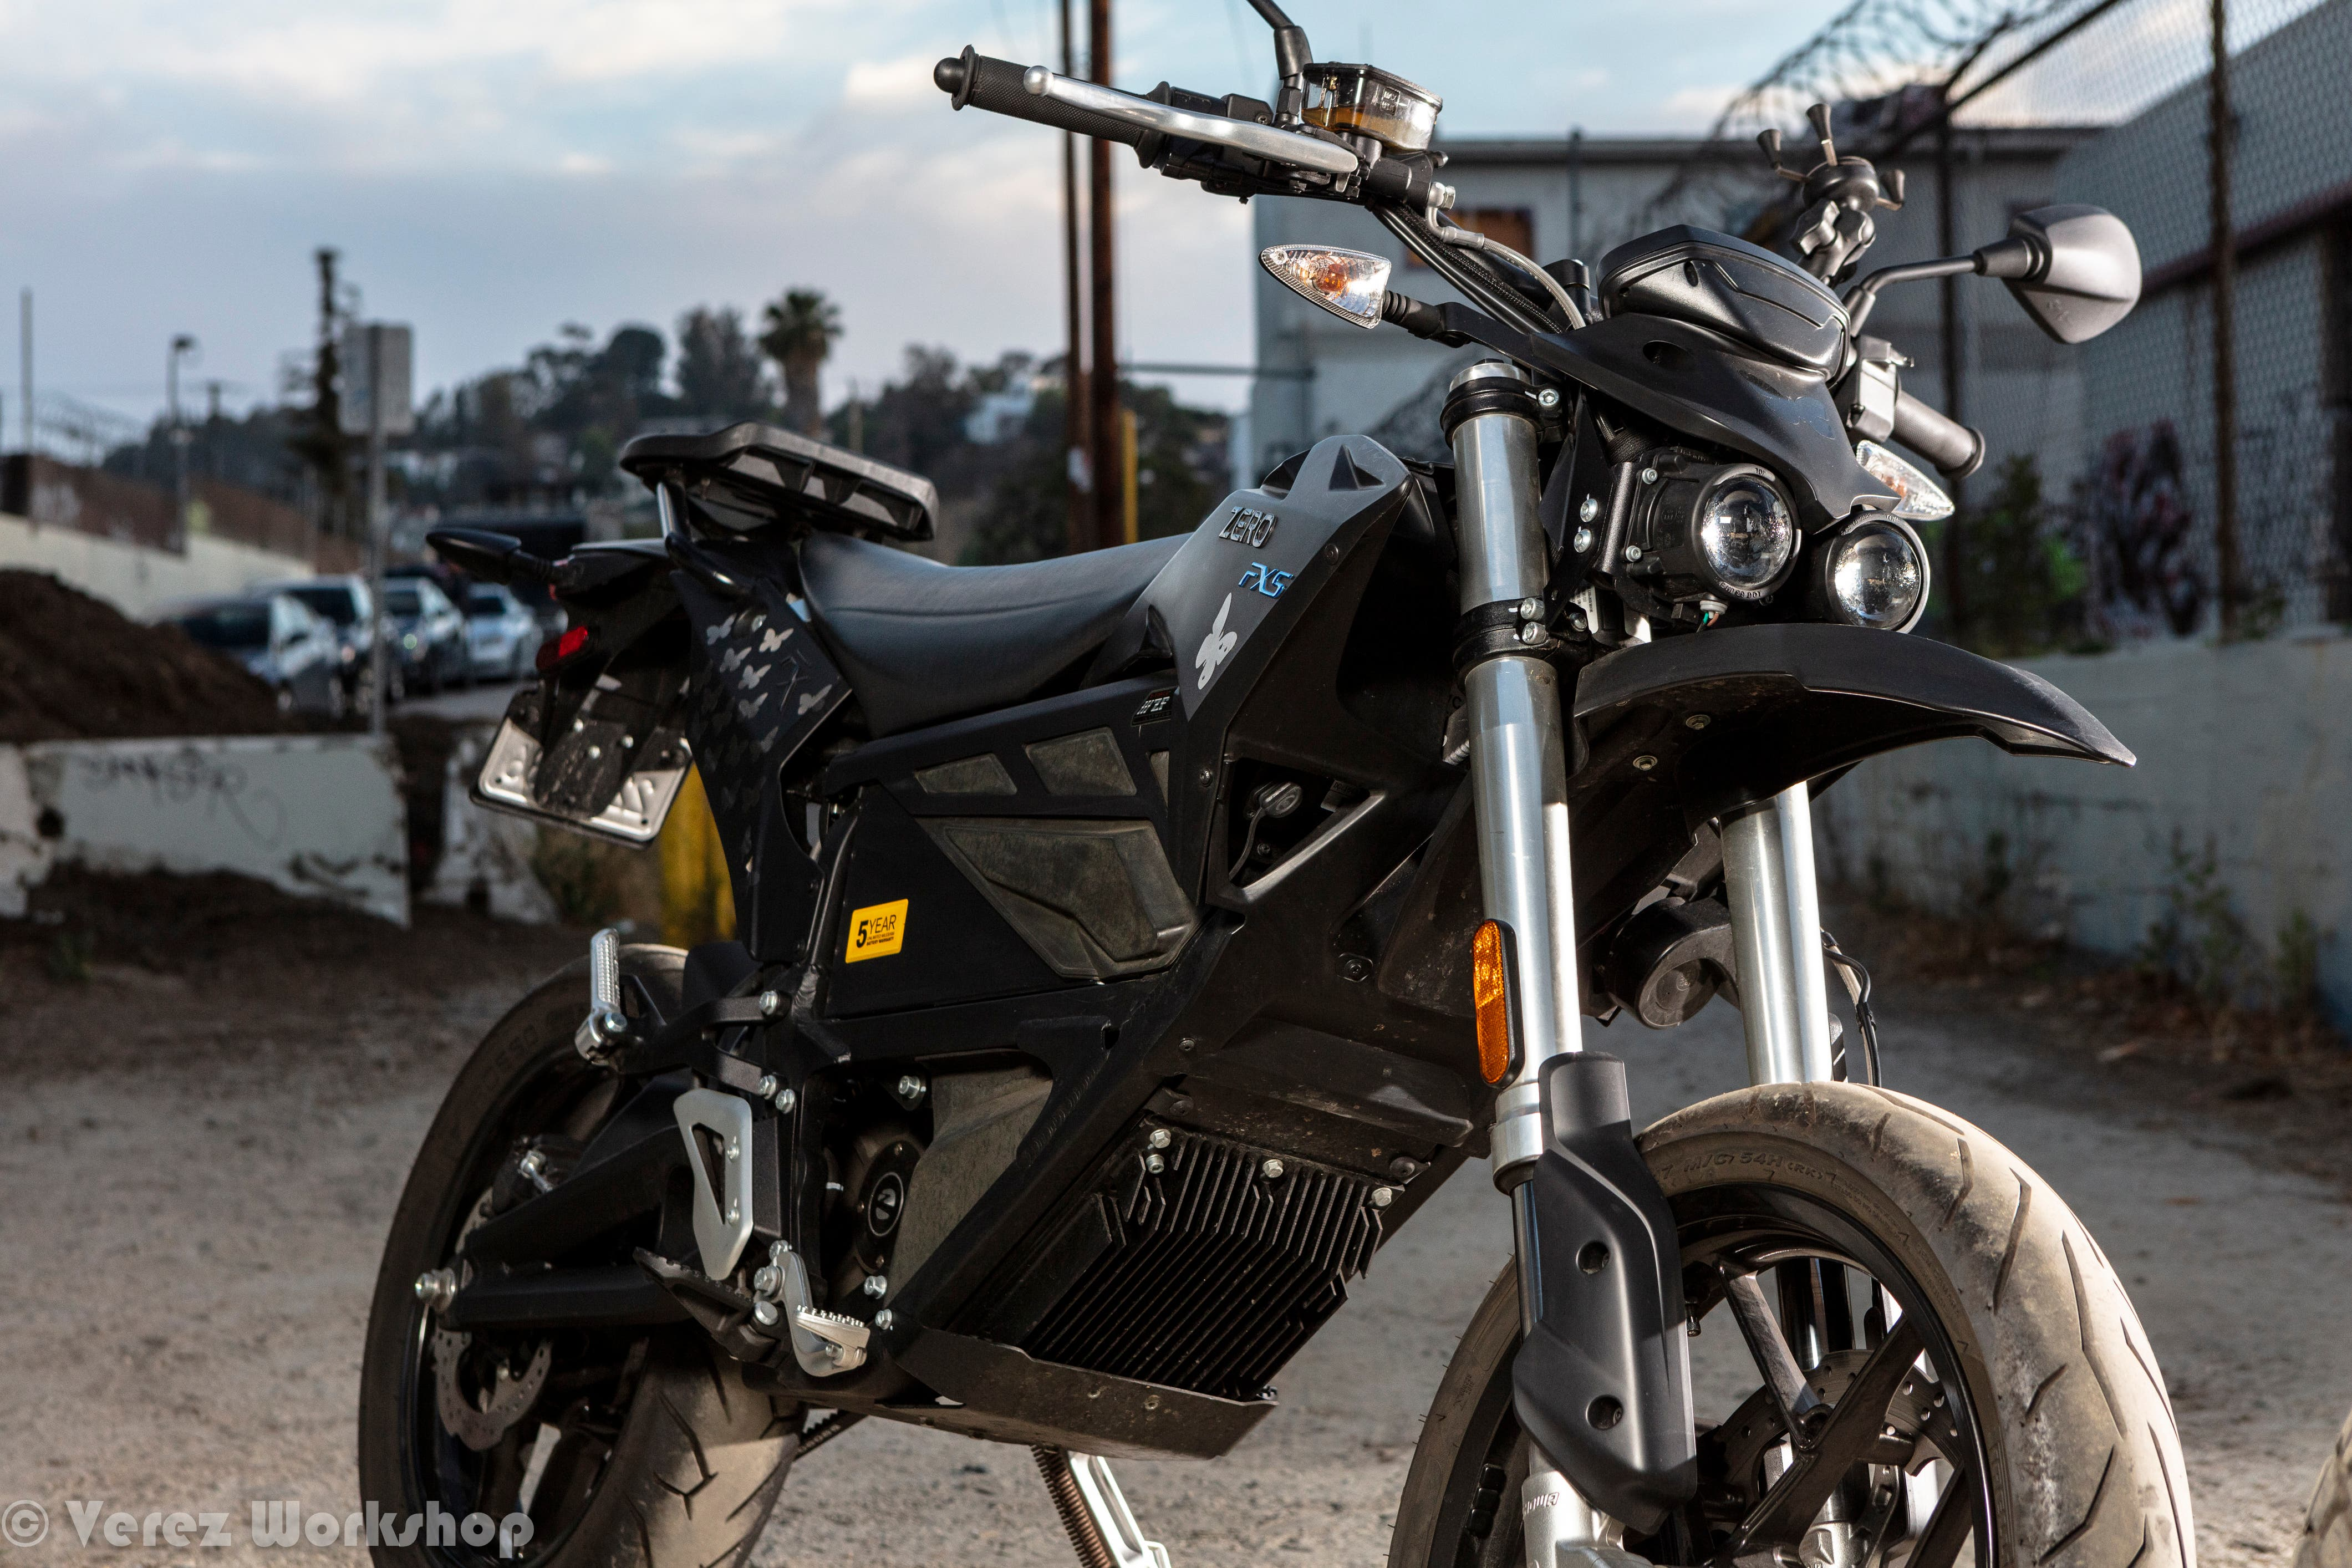 2018 Zero FXS Review | The Ultimate Urban Assault Vehicle